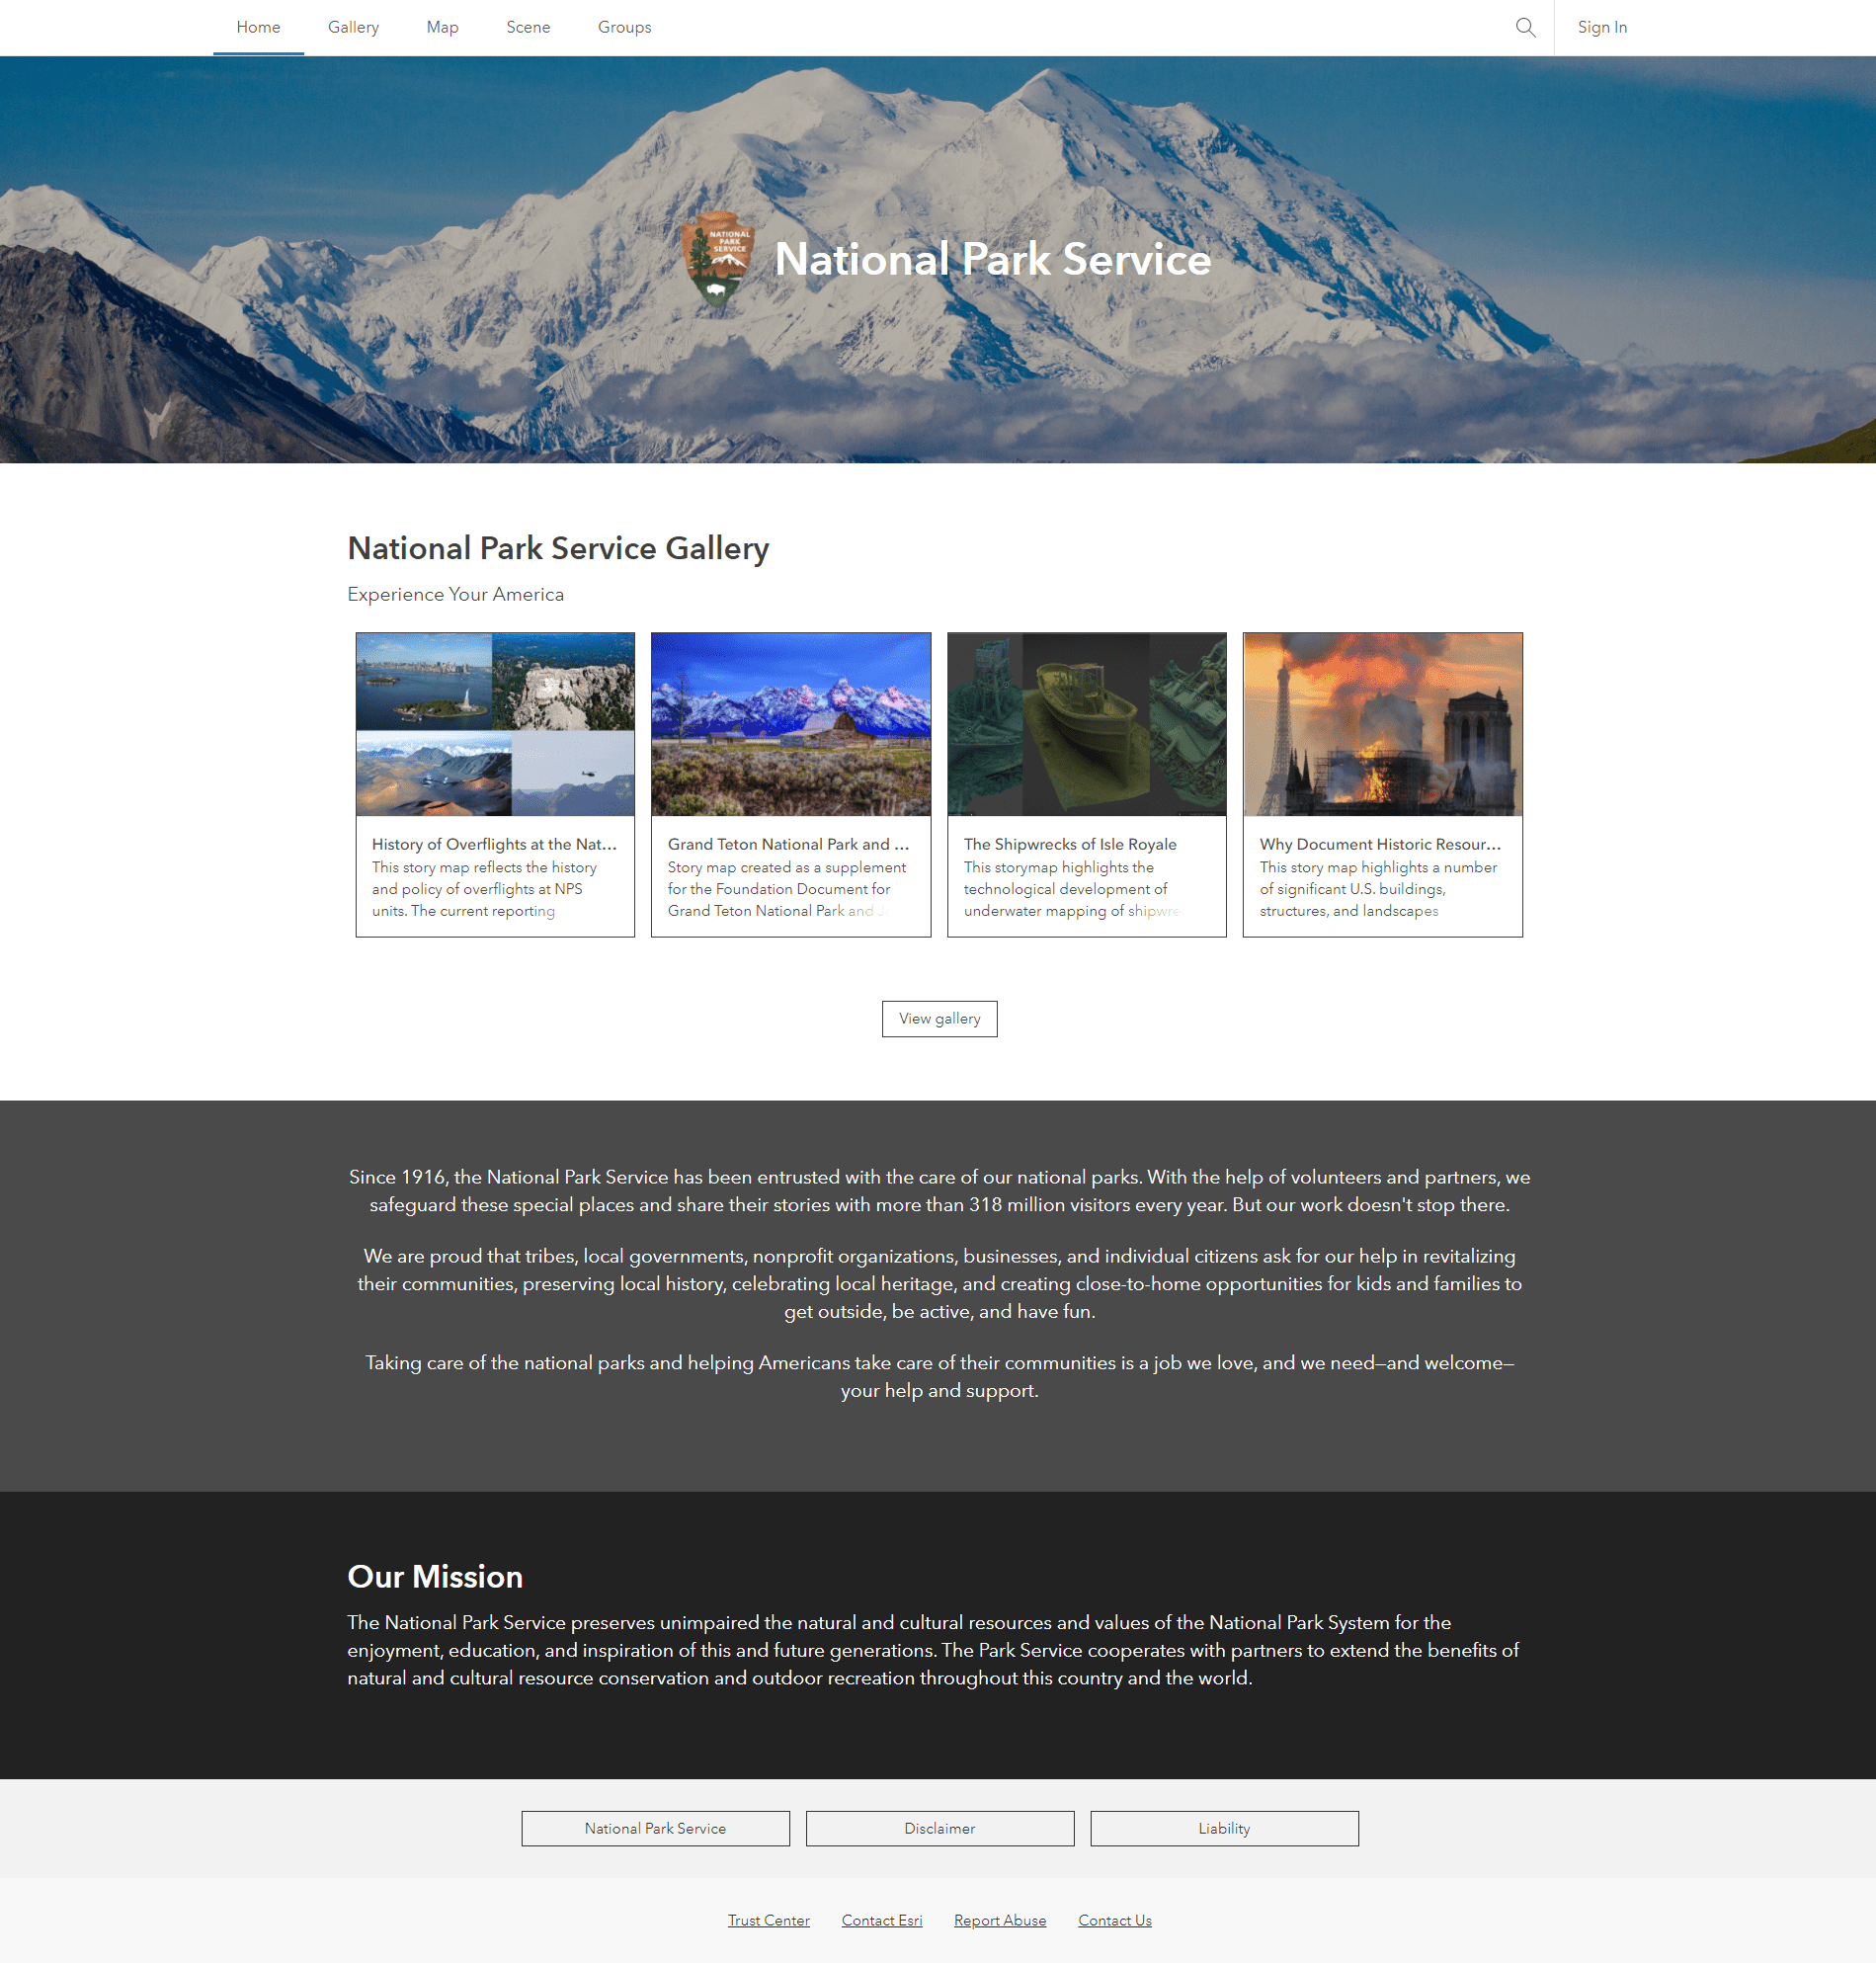 National Parks Service ArcGIS Online Home Page